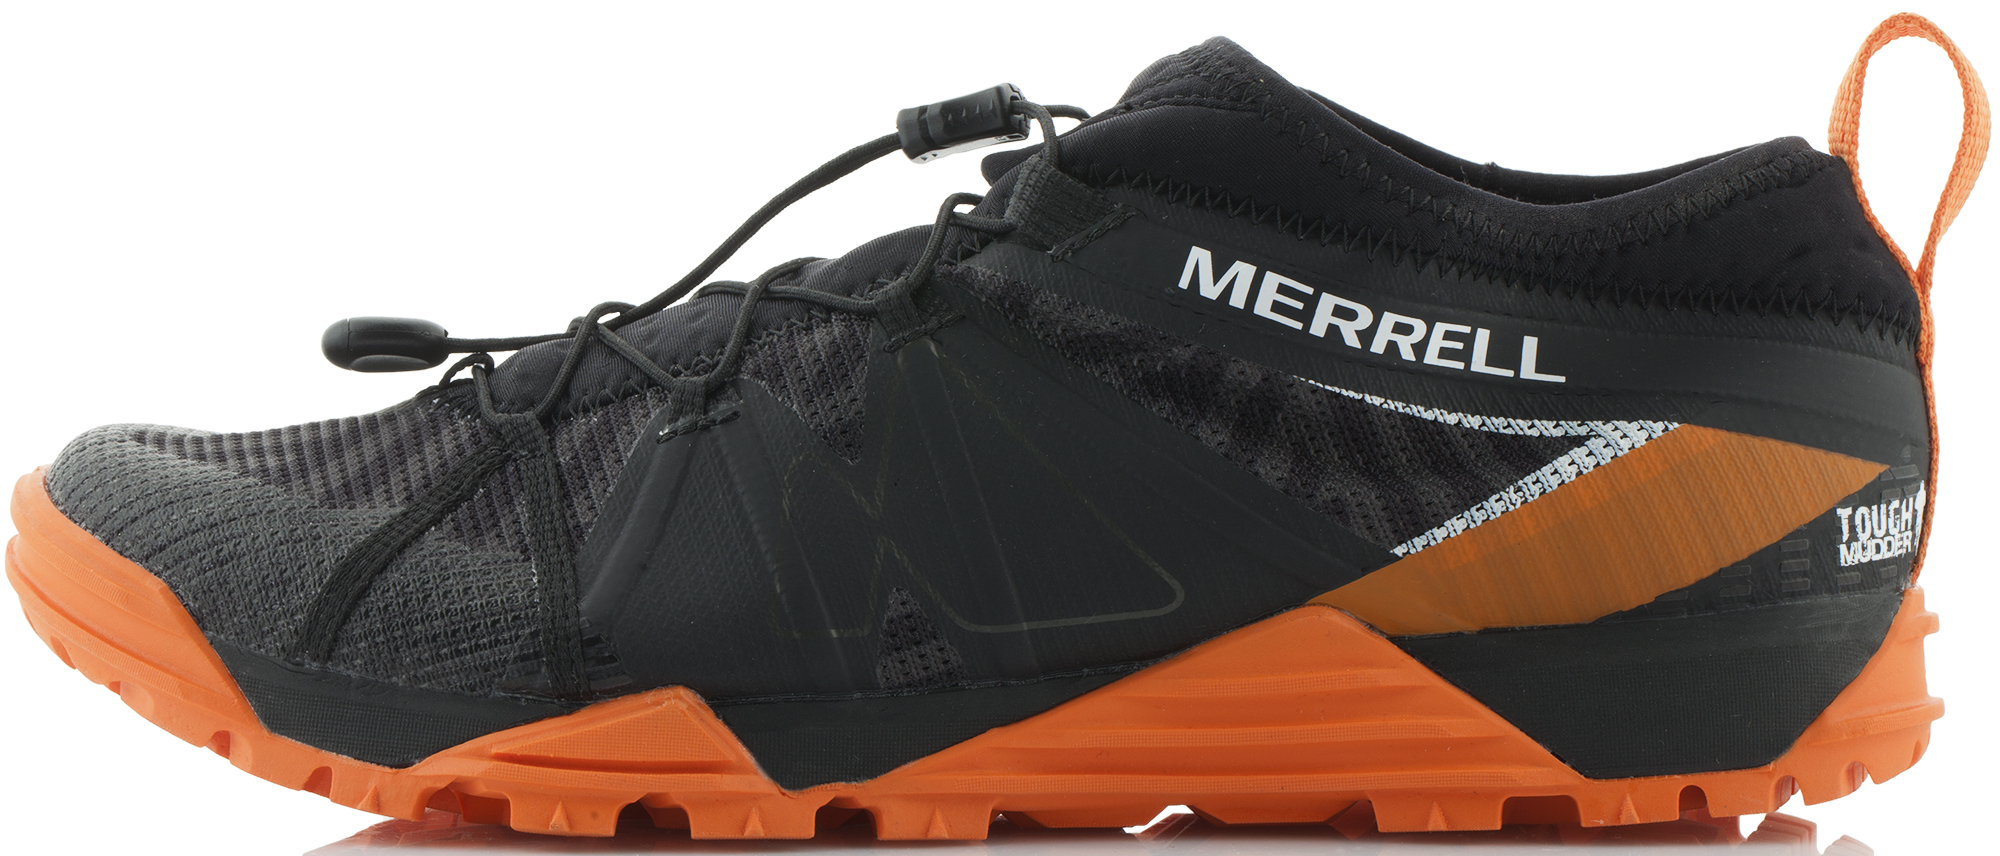 Merrell Кроссовки мужские Merrell Avalaunch Tough Mudder